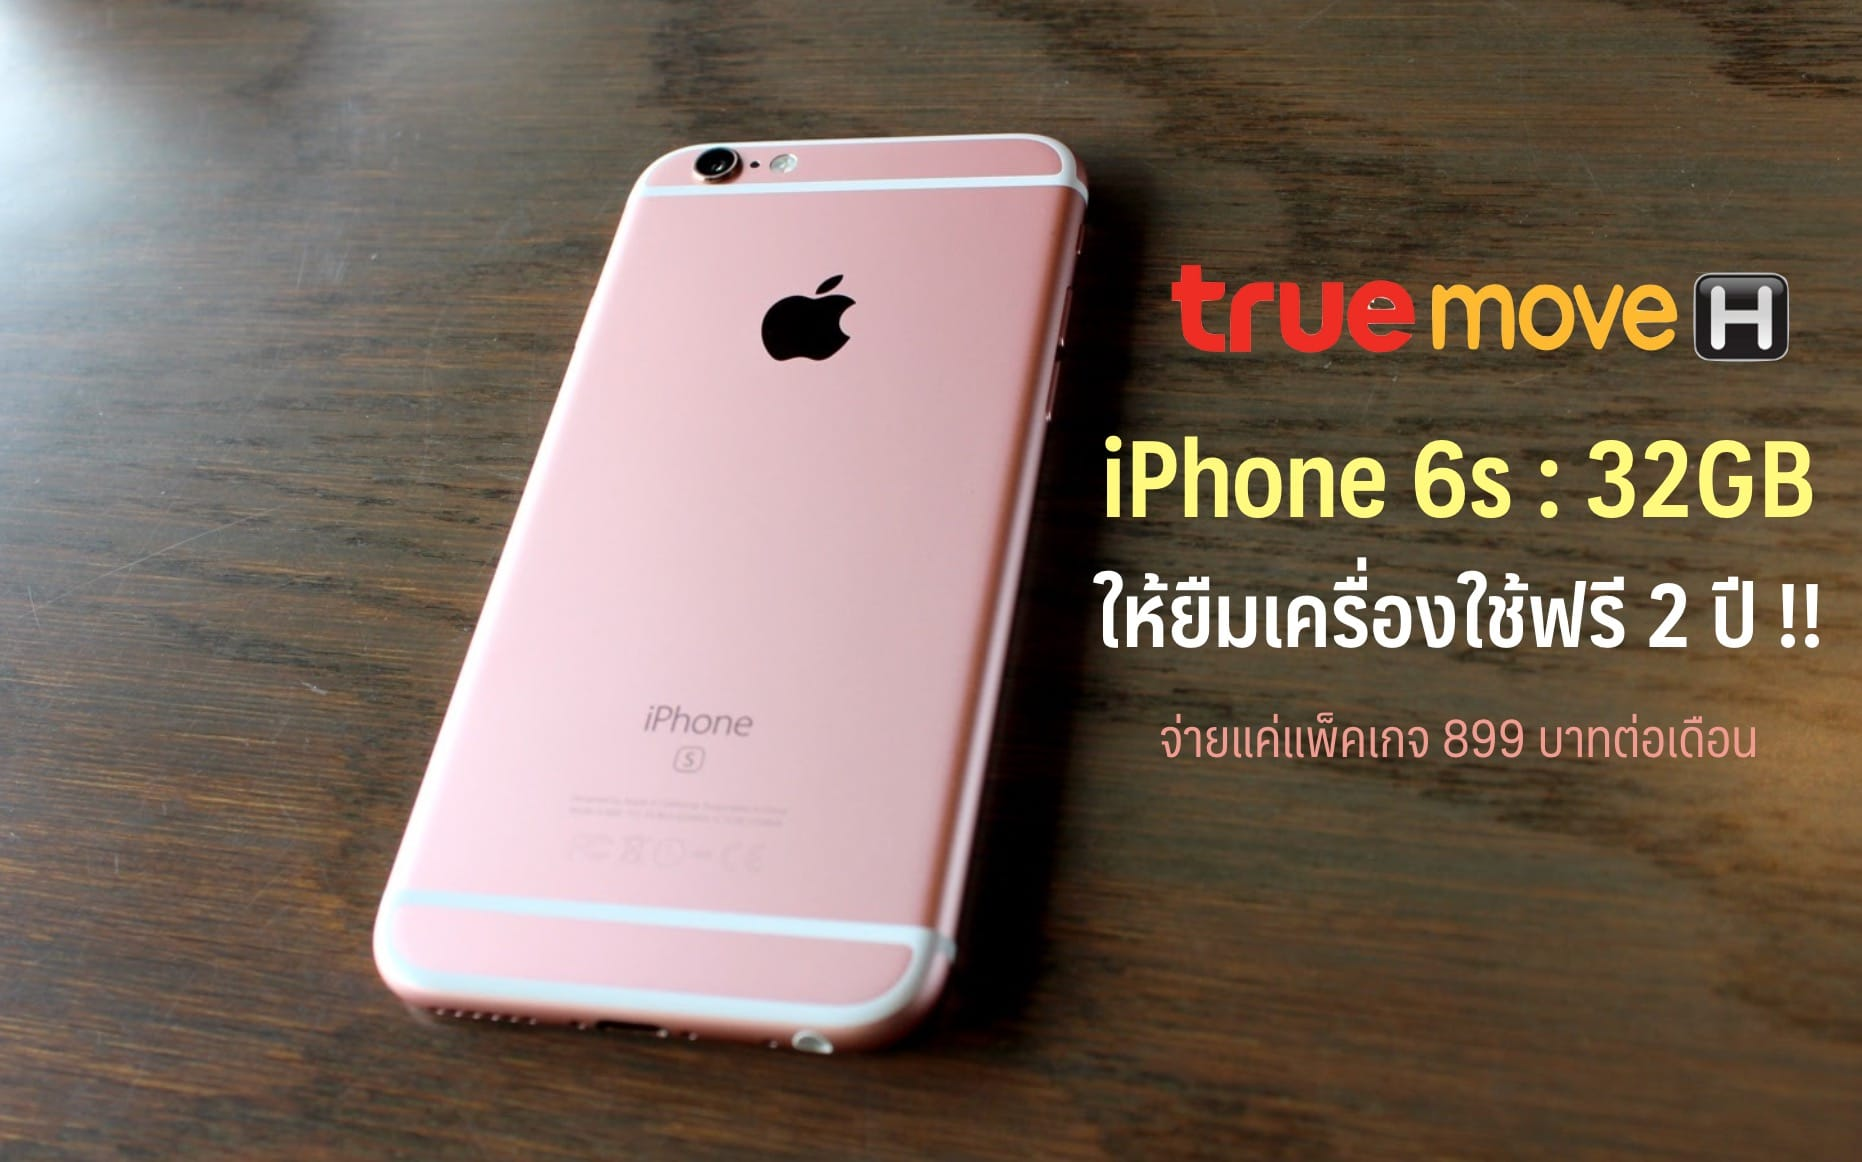 truemove-h-iphone-6s-promotion-free-use-2-year-2